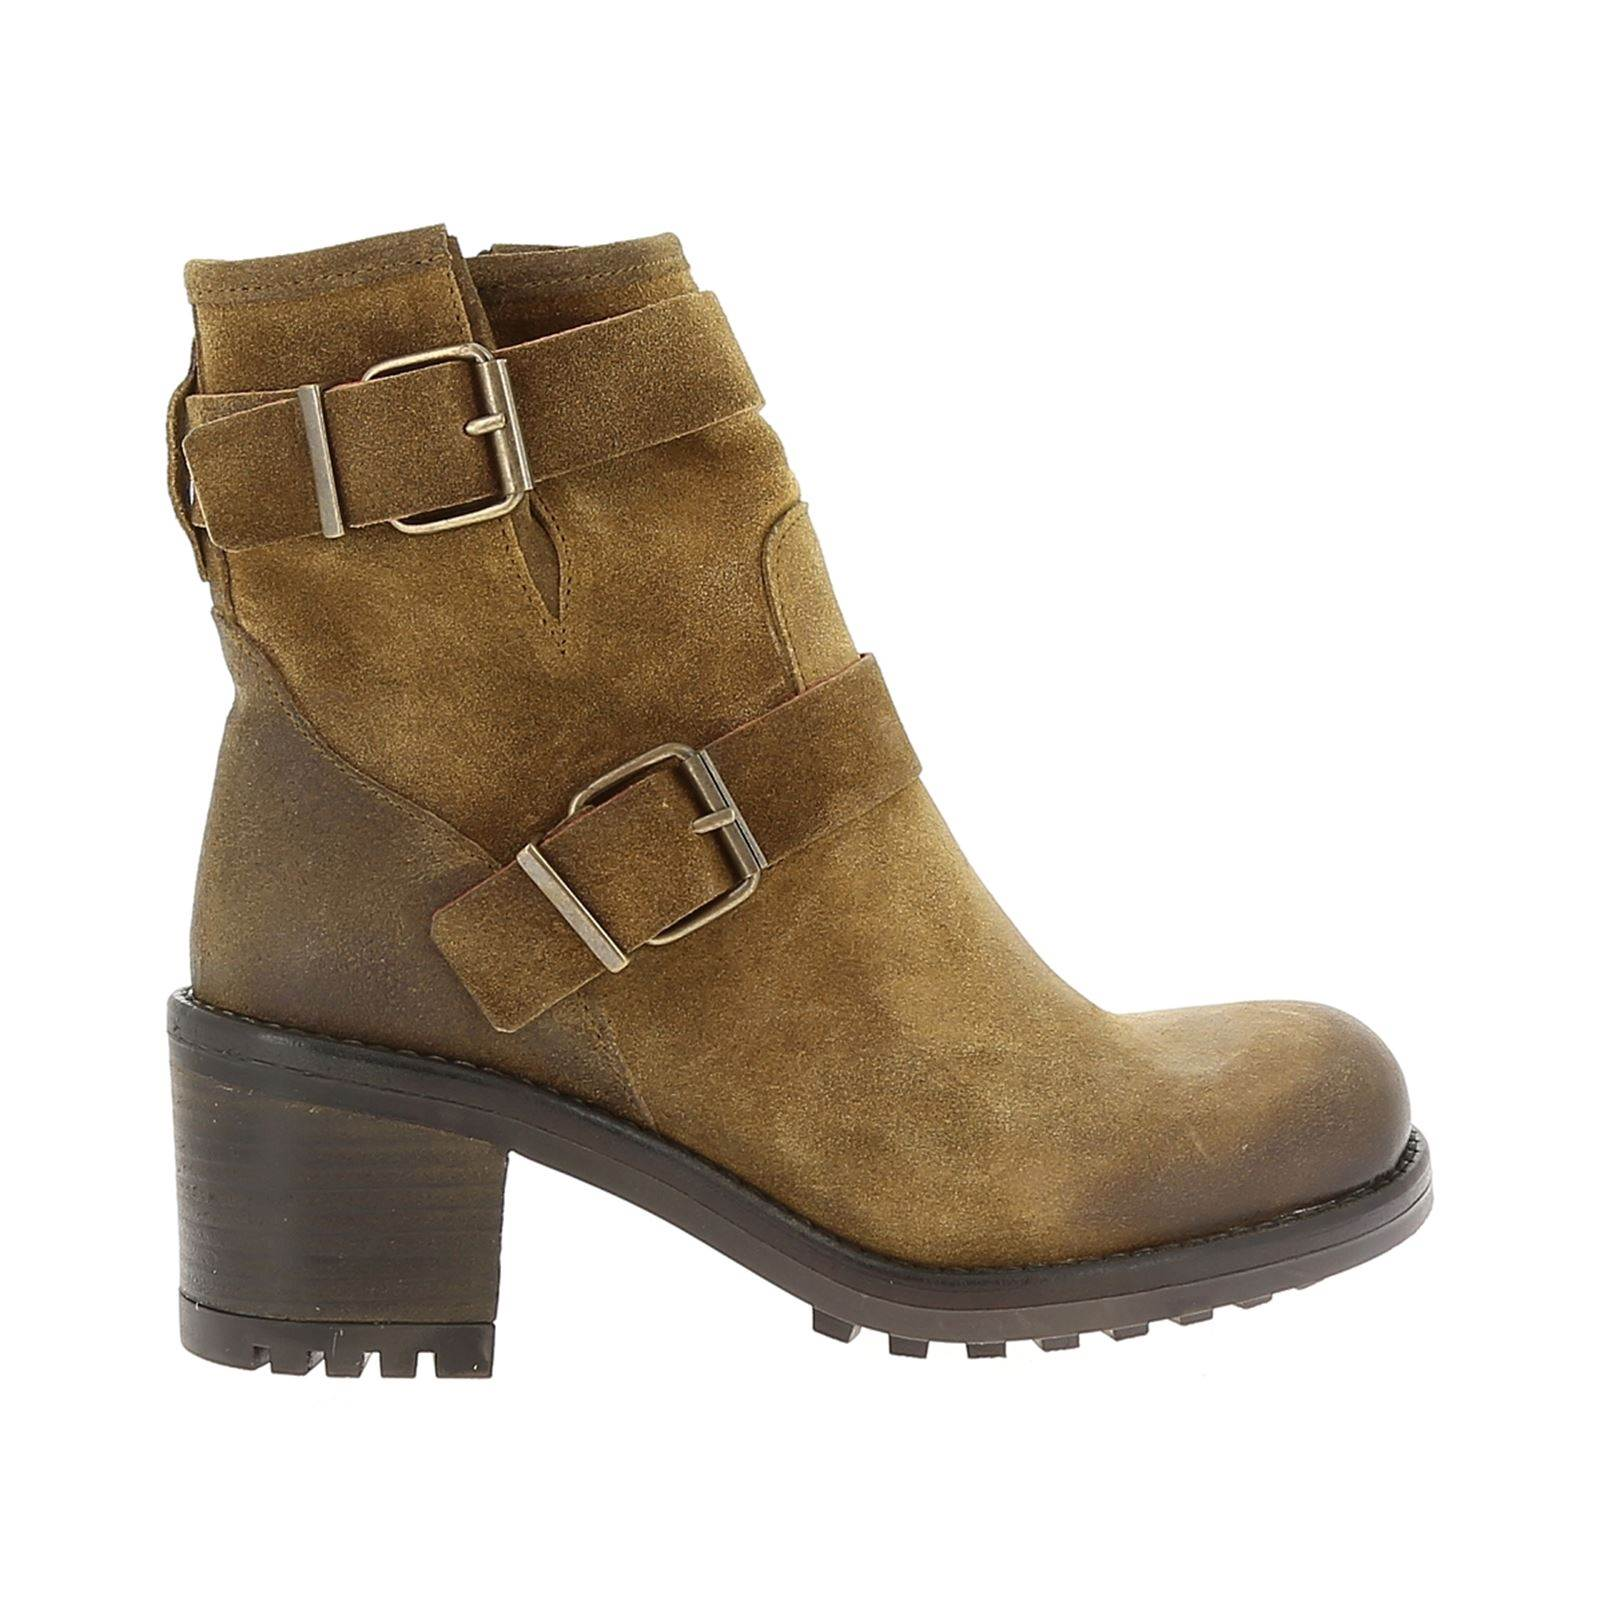 Boots Ecow Ecow Ecow Ecow TaupeBrandalley Ecow Boots Boots TaupeBrandalley TaupeBrandalley TaupeBrandalley Boots ULVSpMqzG